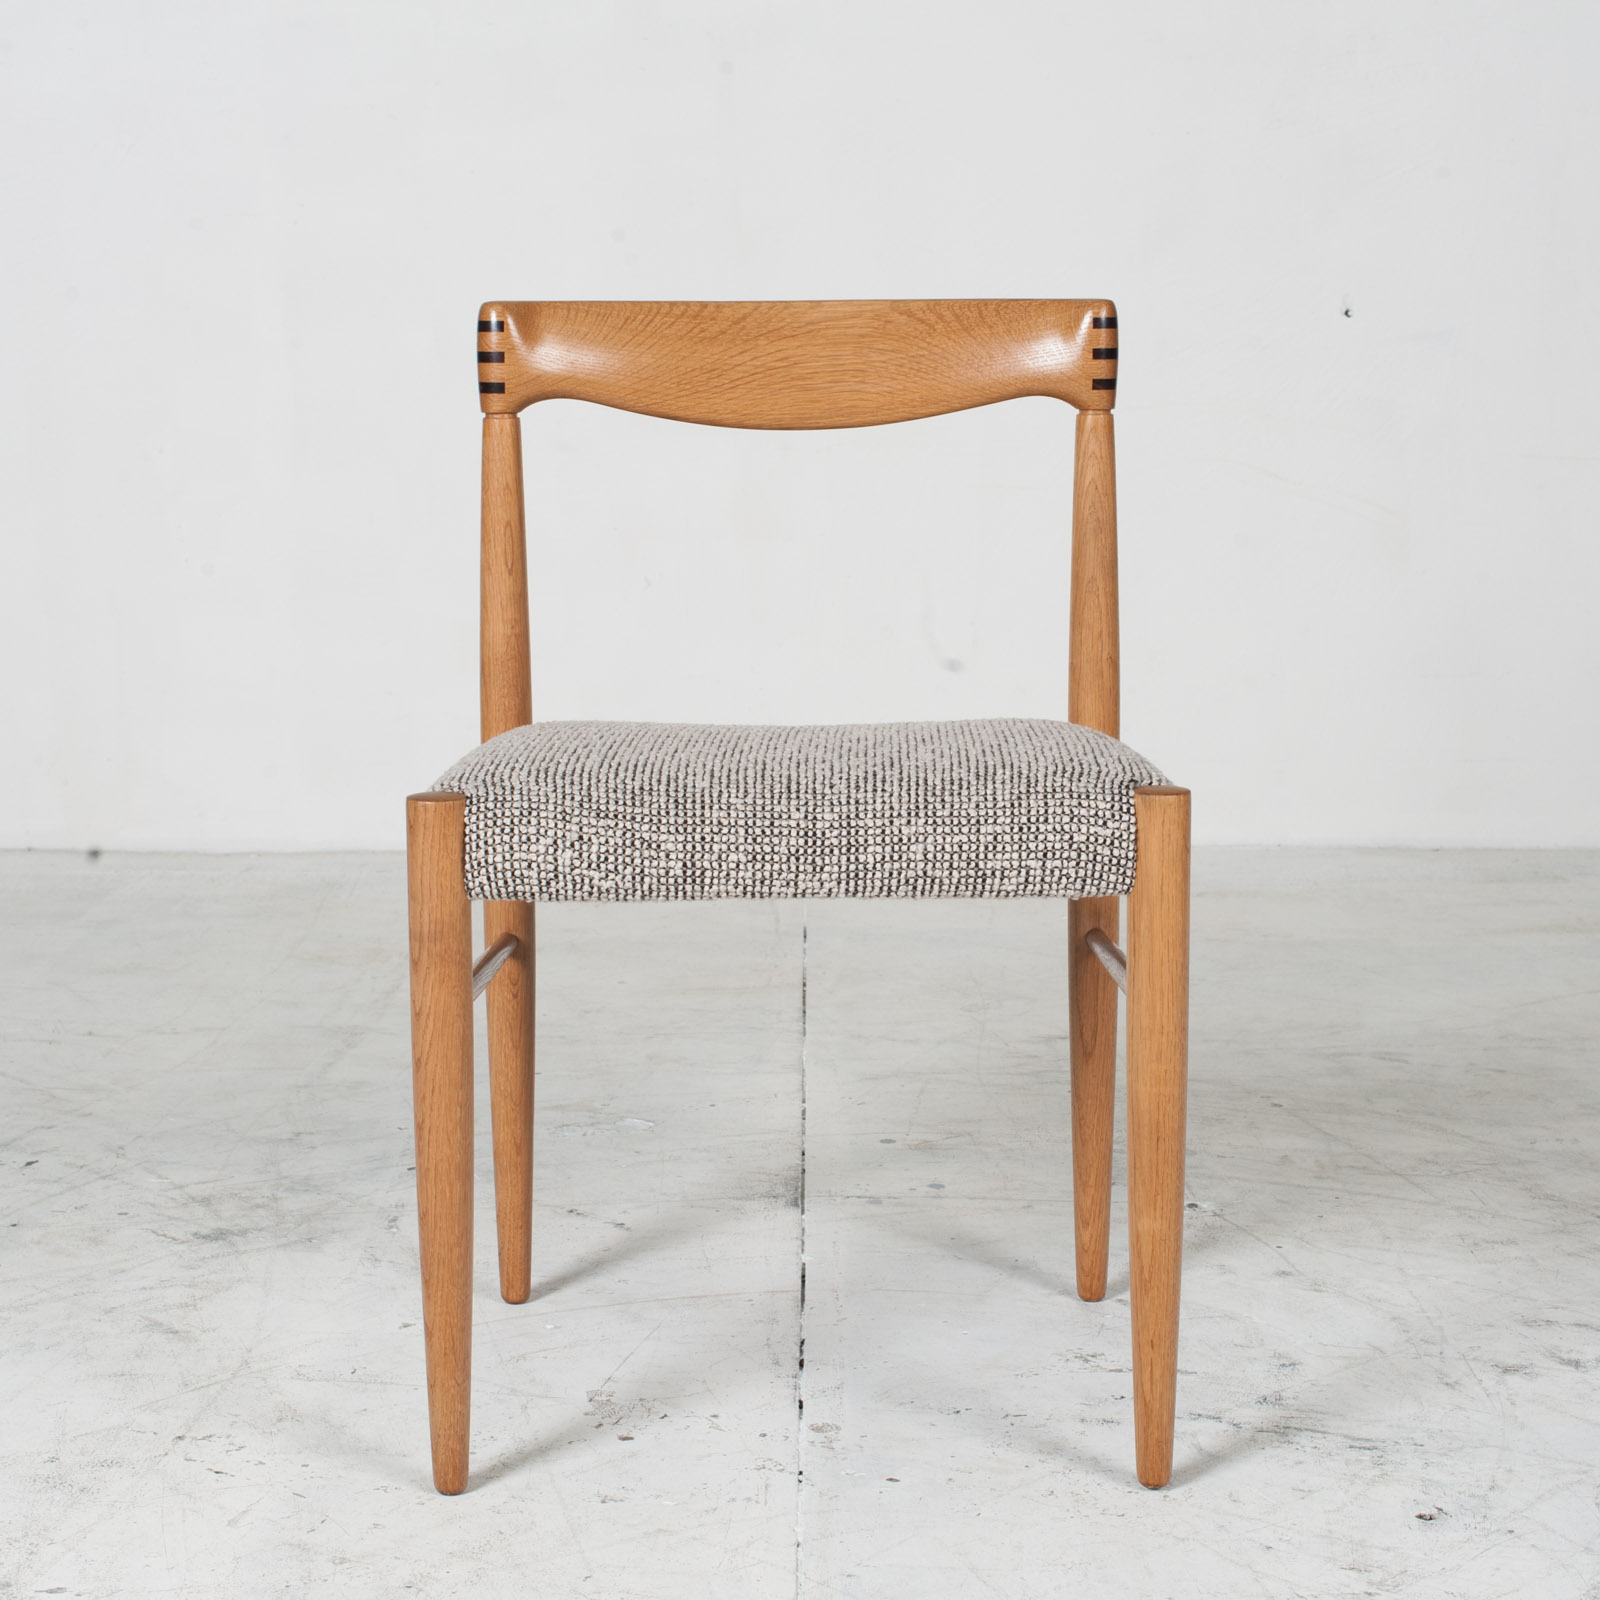 Set 6 Dining Chairs By H.w.klein In Oak And Textured Grey Wool 1960s Denmark 11